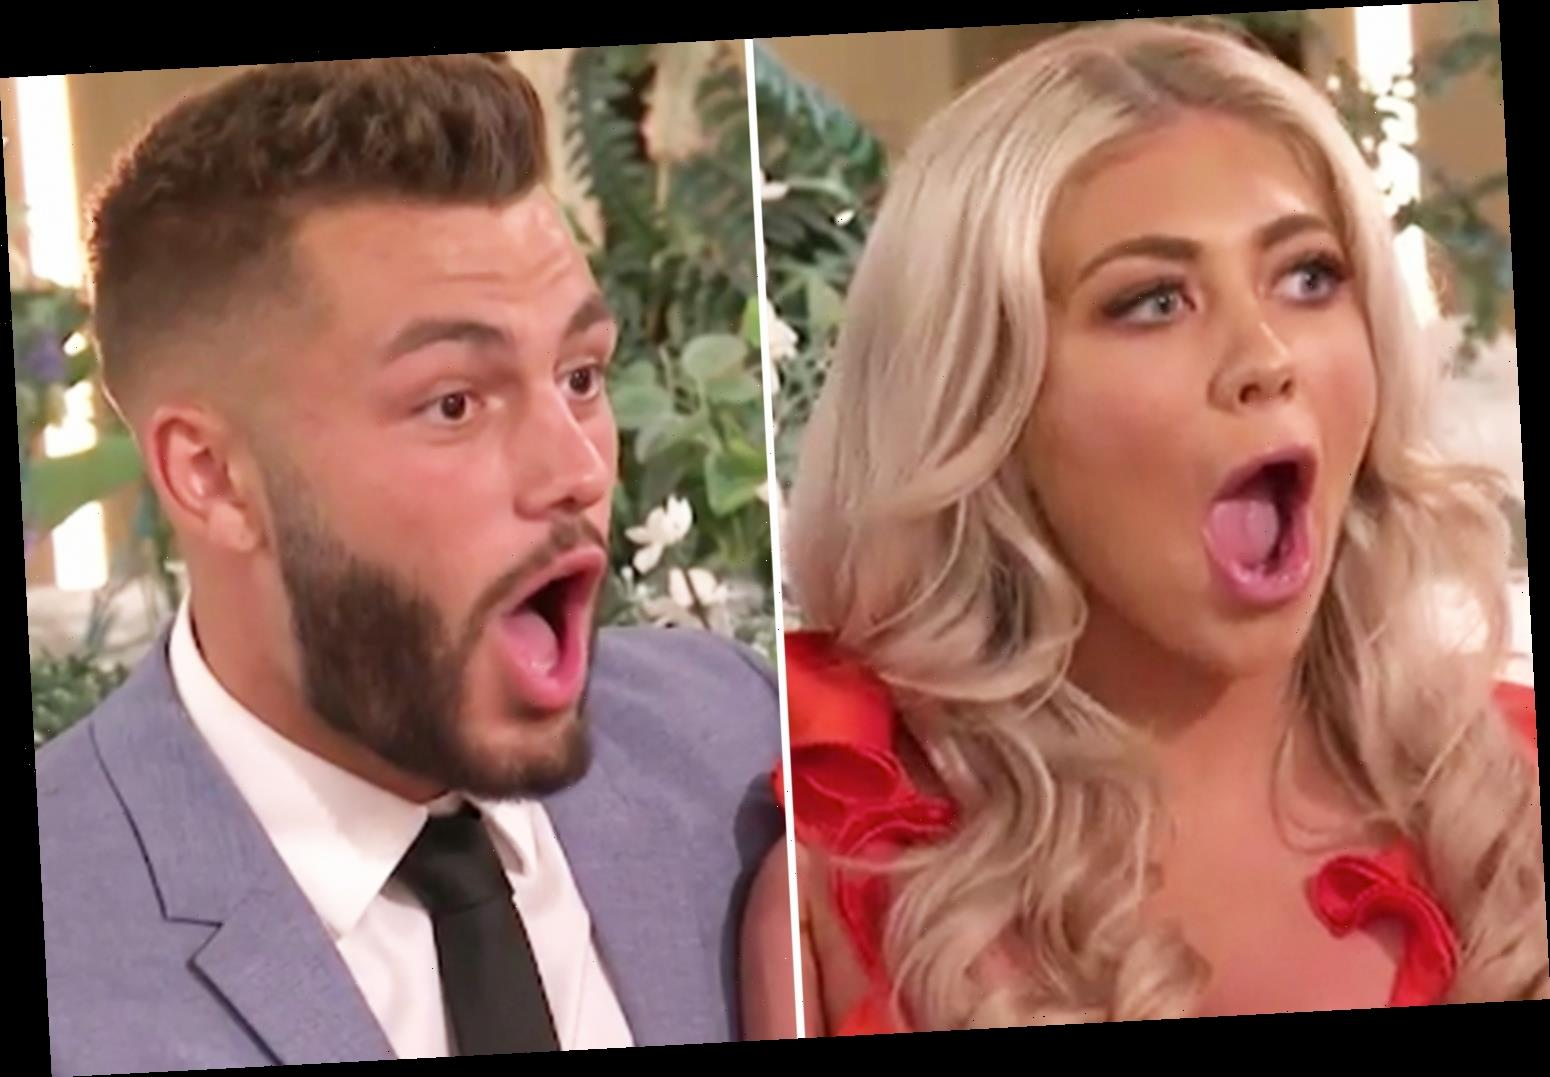 Love Island winner Finn says he can't wait for the 'full English breakfast' with Paige once they leave the villa – The Sun